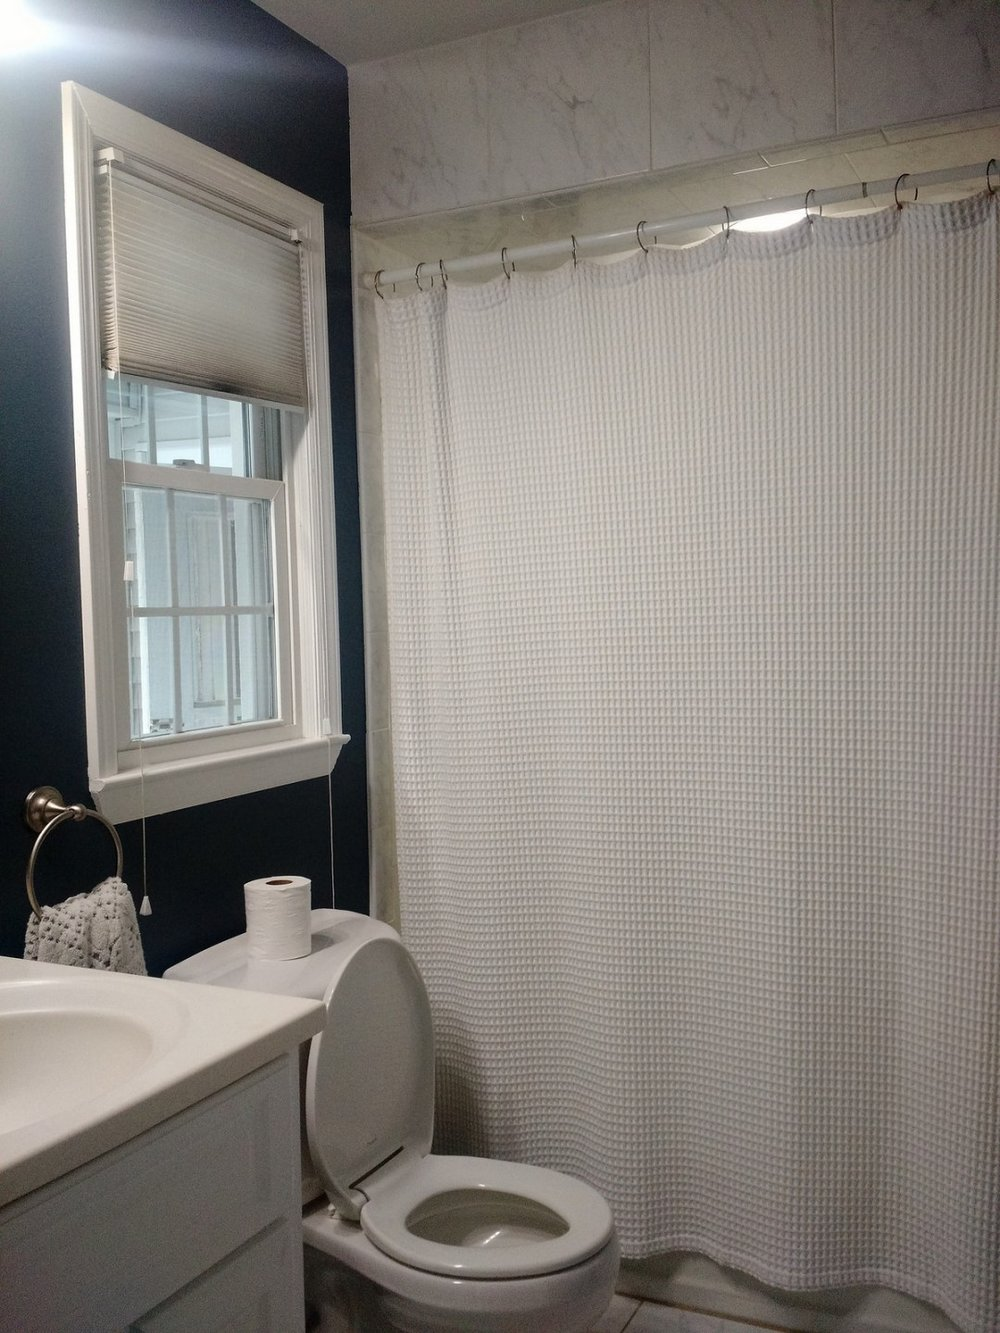 BATHROOM-RENOVATION-NJ.jpg